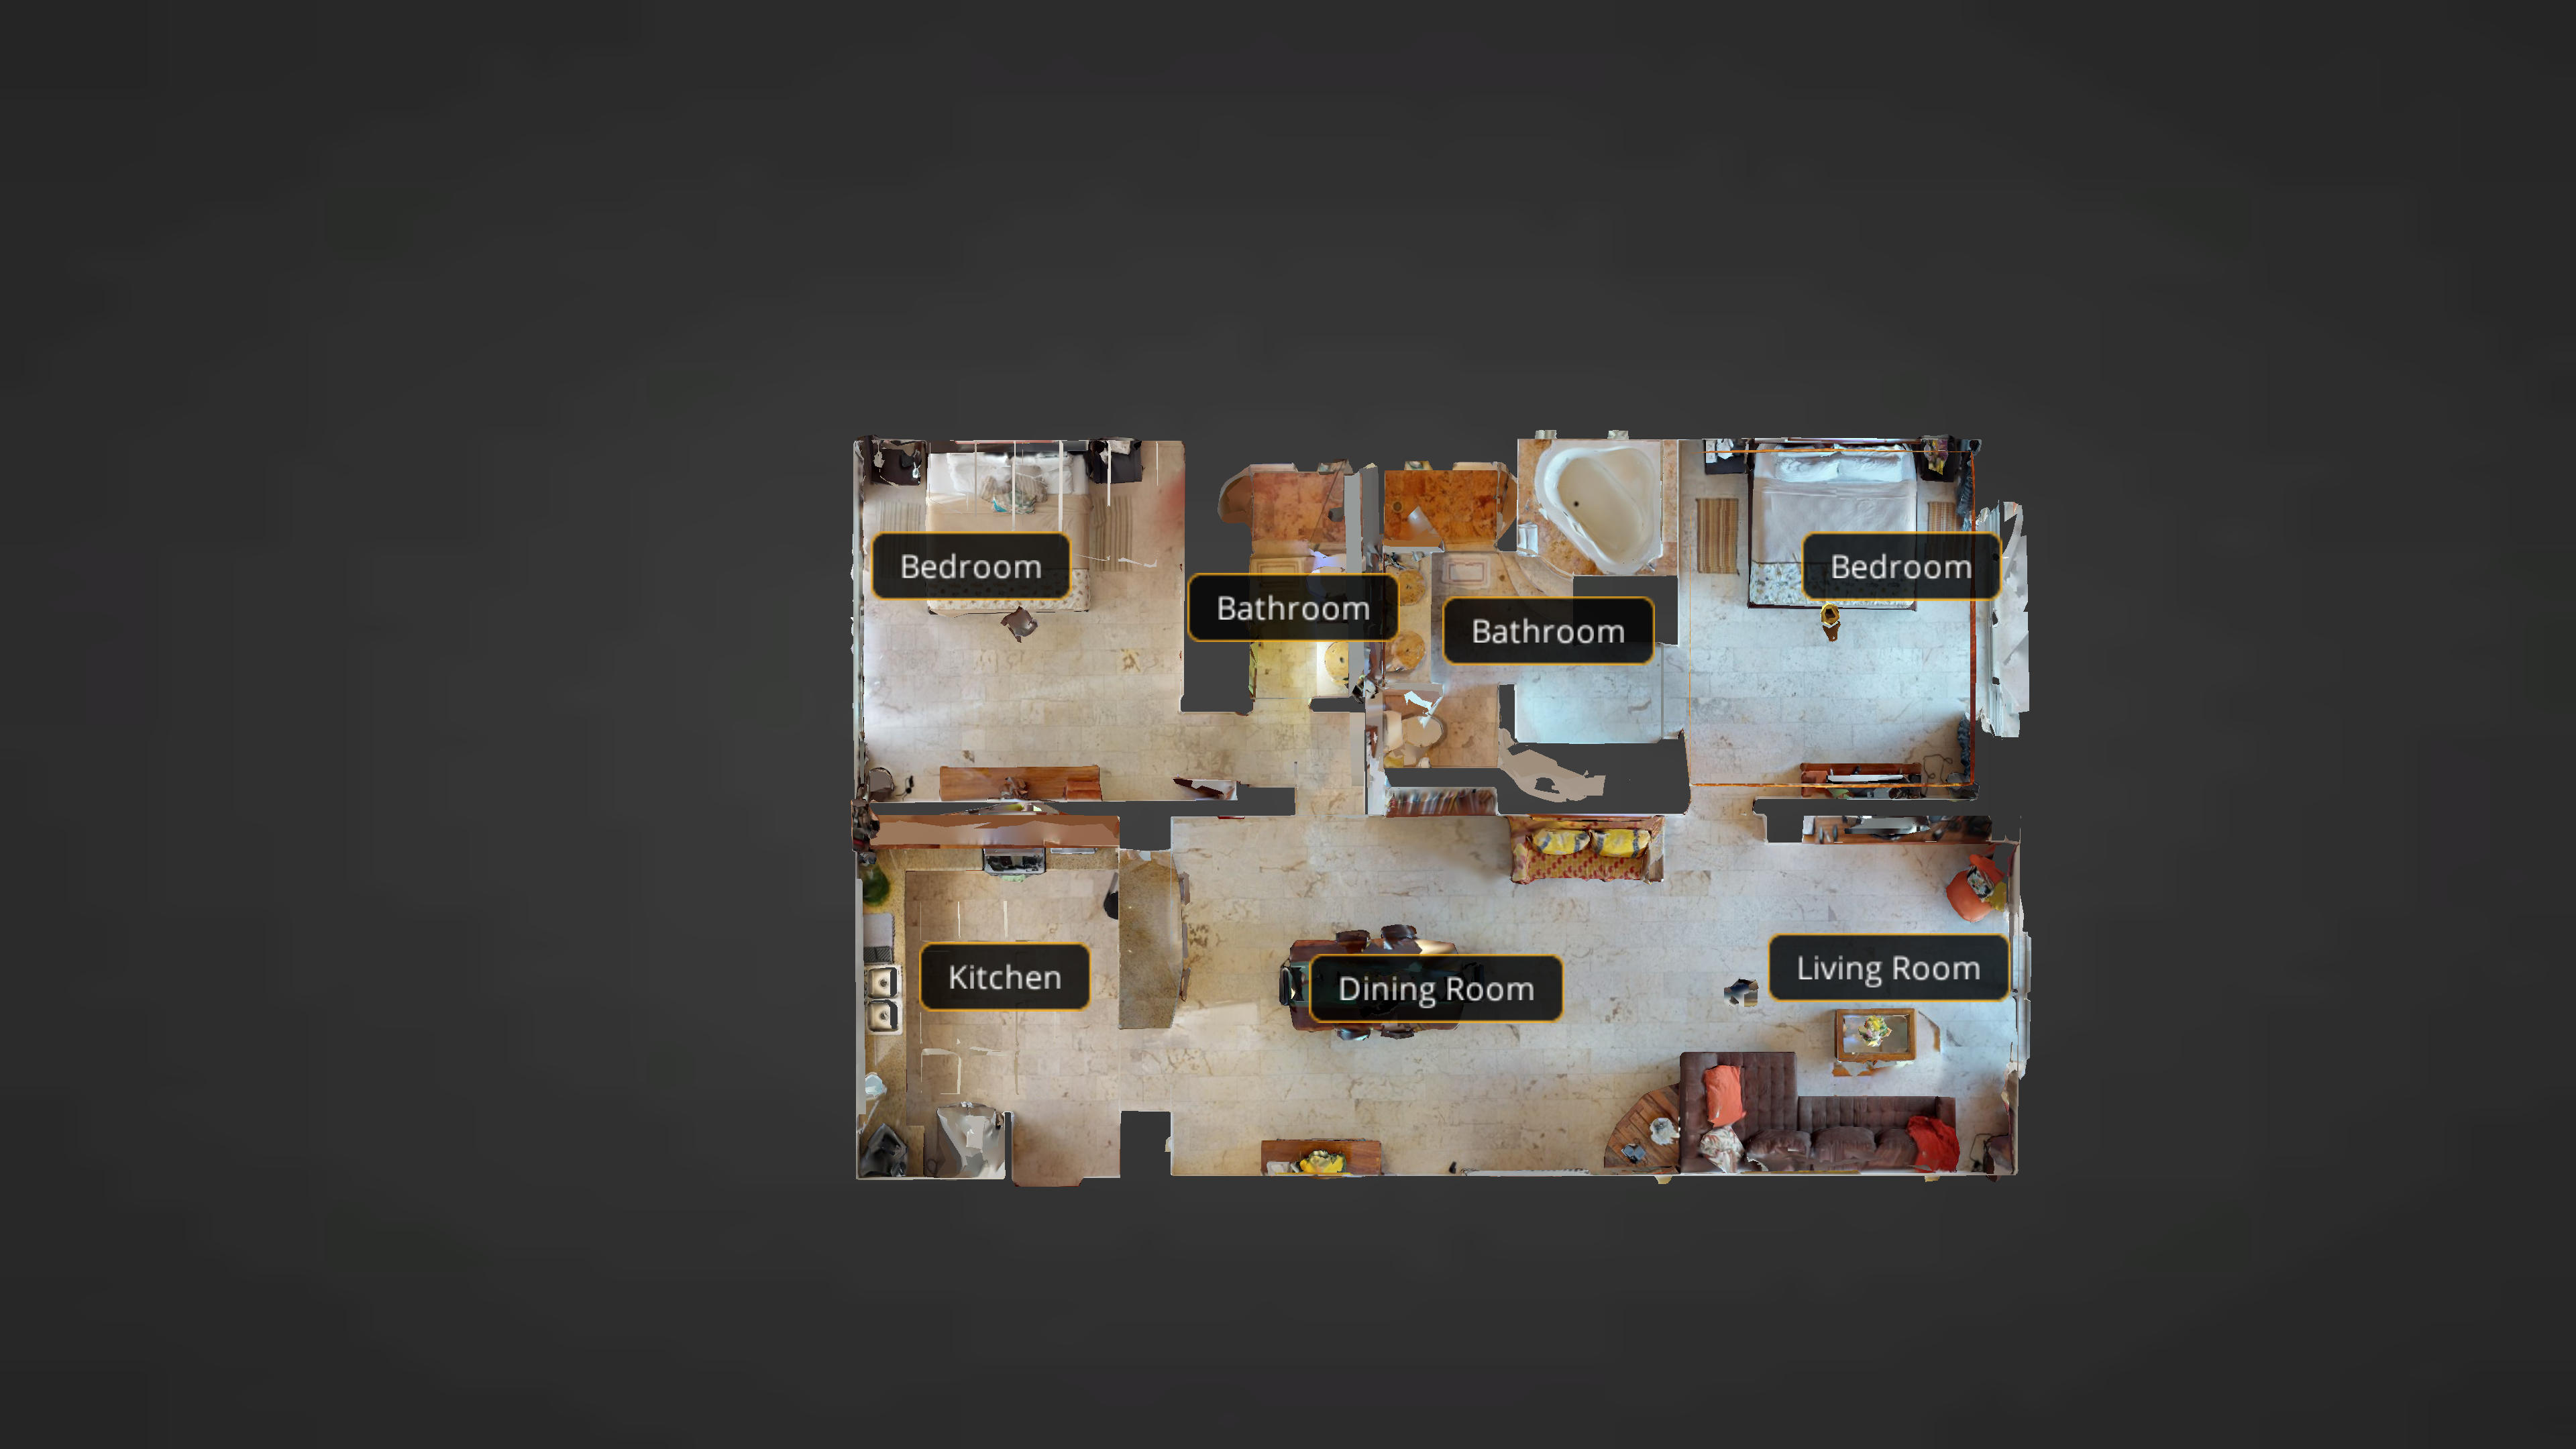 Apartament-1202-Floor-Plan.jpg